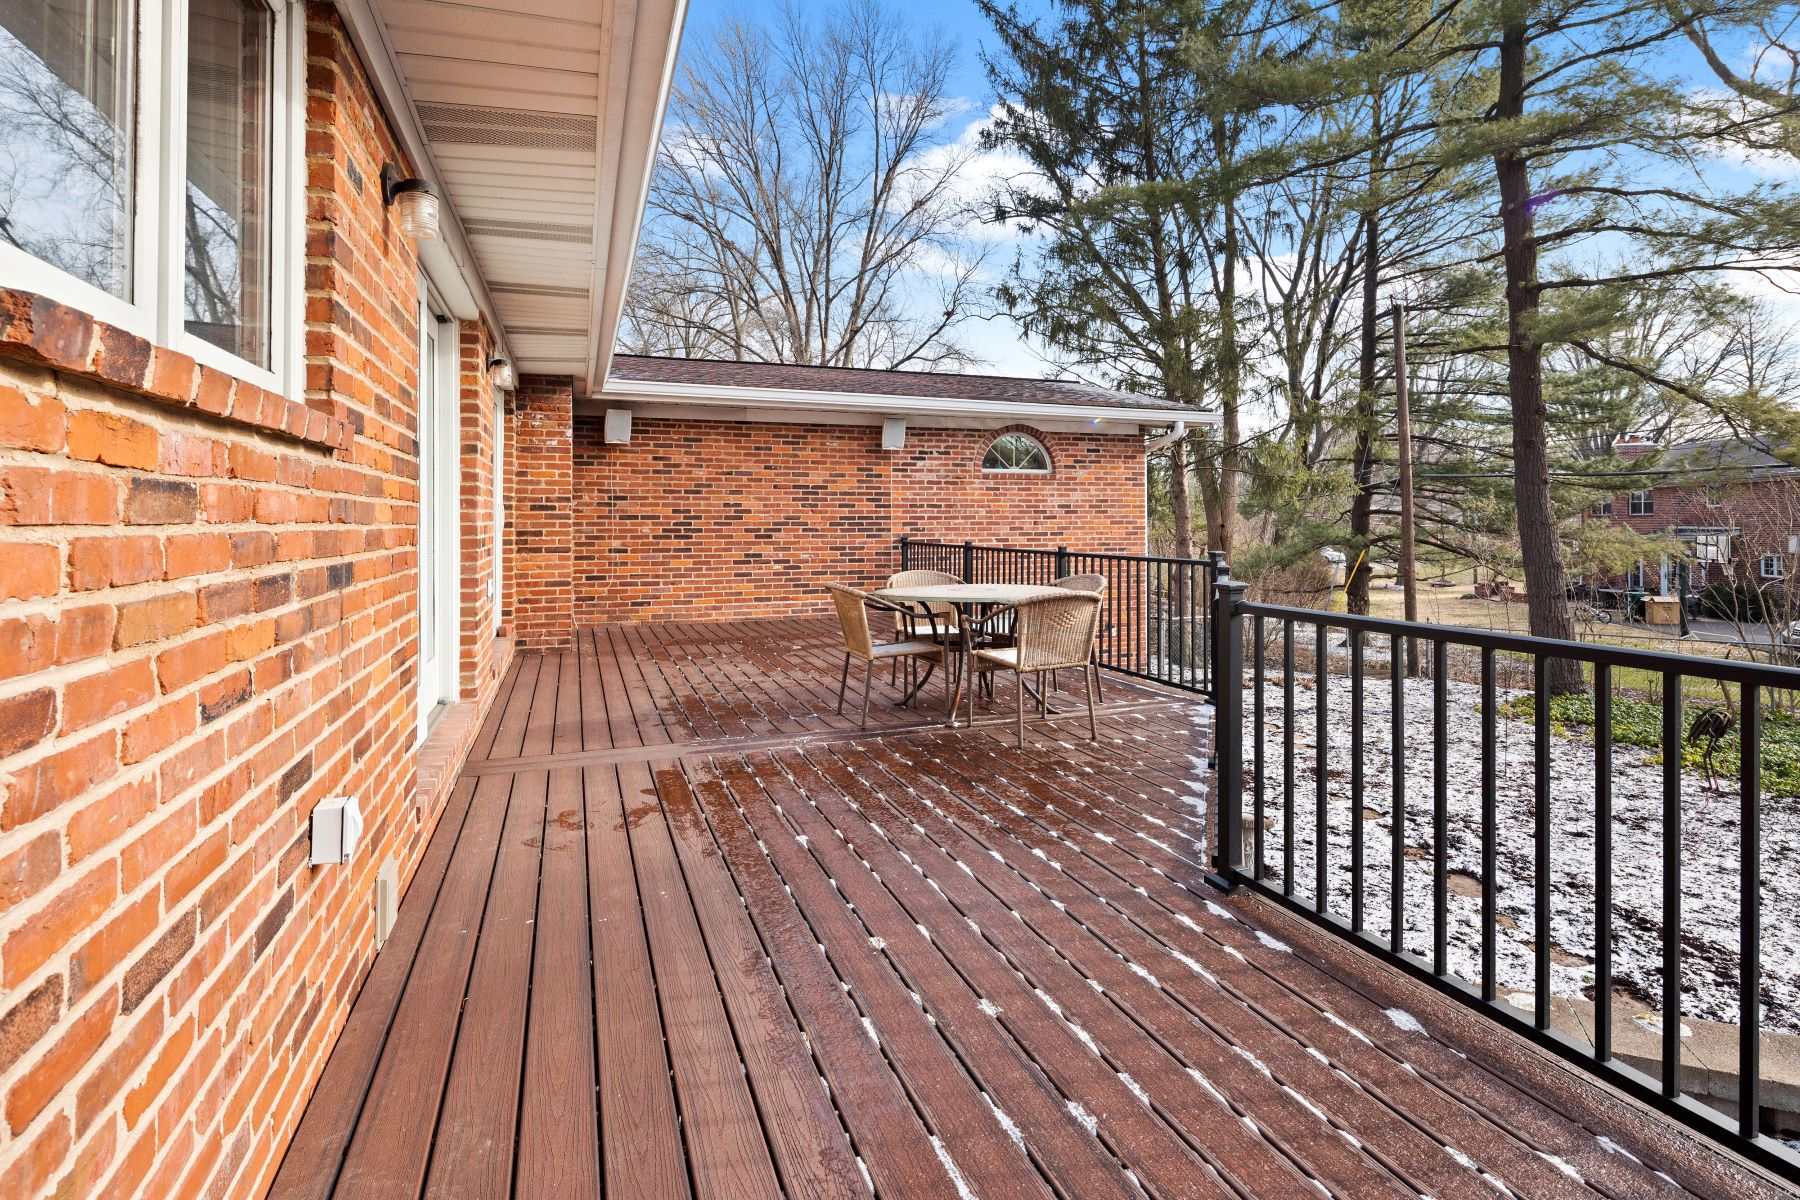 Additional photo for property listing at Spacious Ranch in Warson Woods 1470 Reauville Drive Warson Woods, Missouri 63122 United States